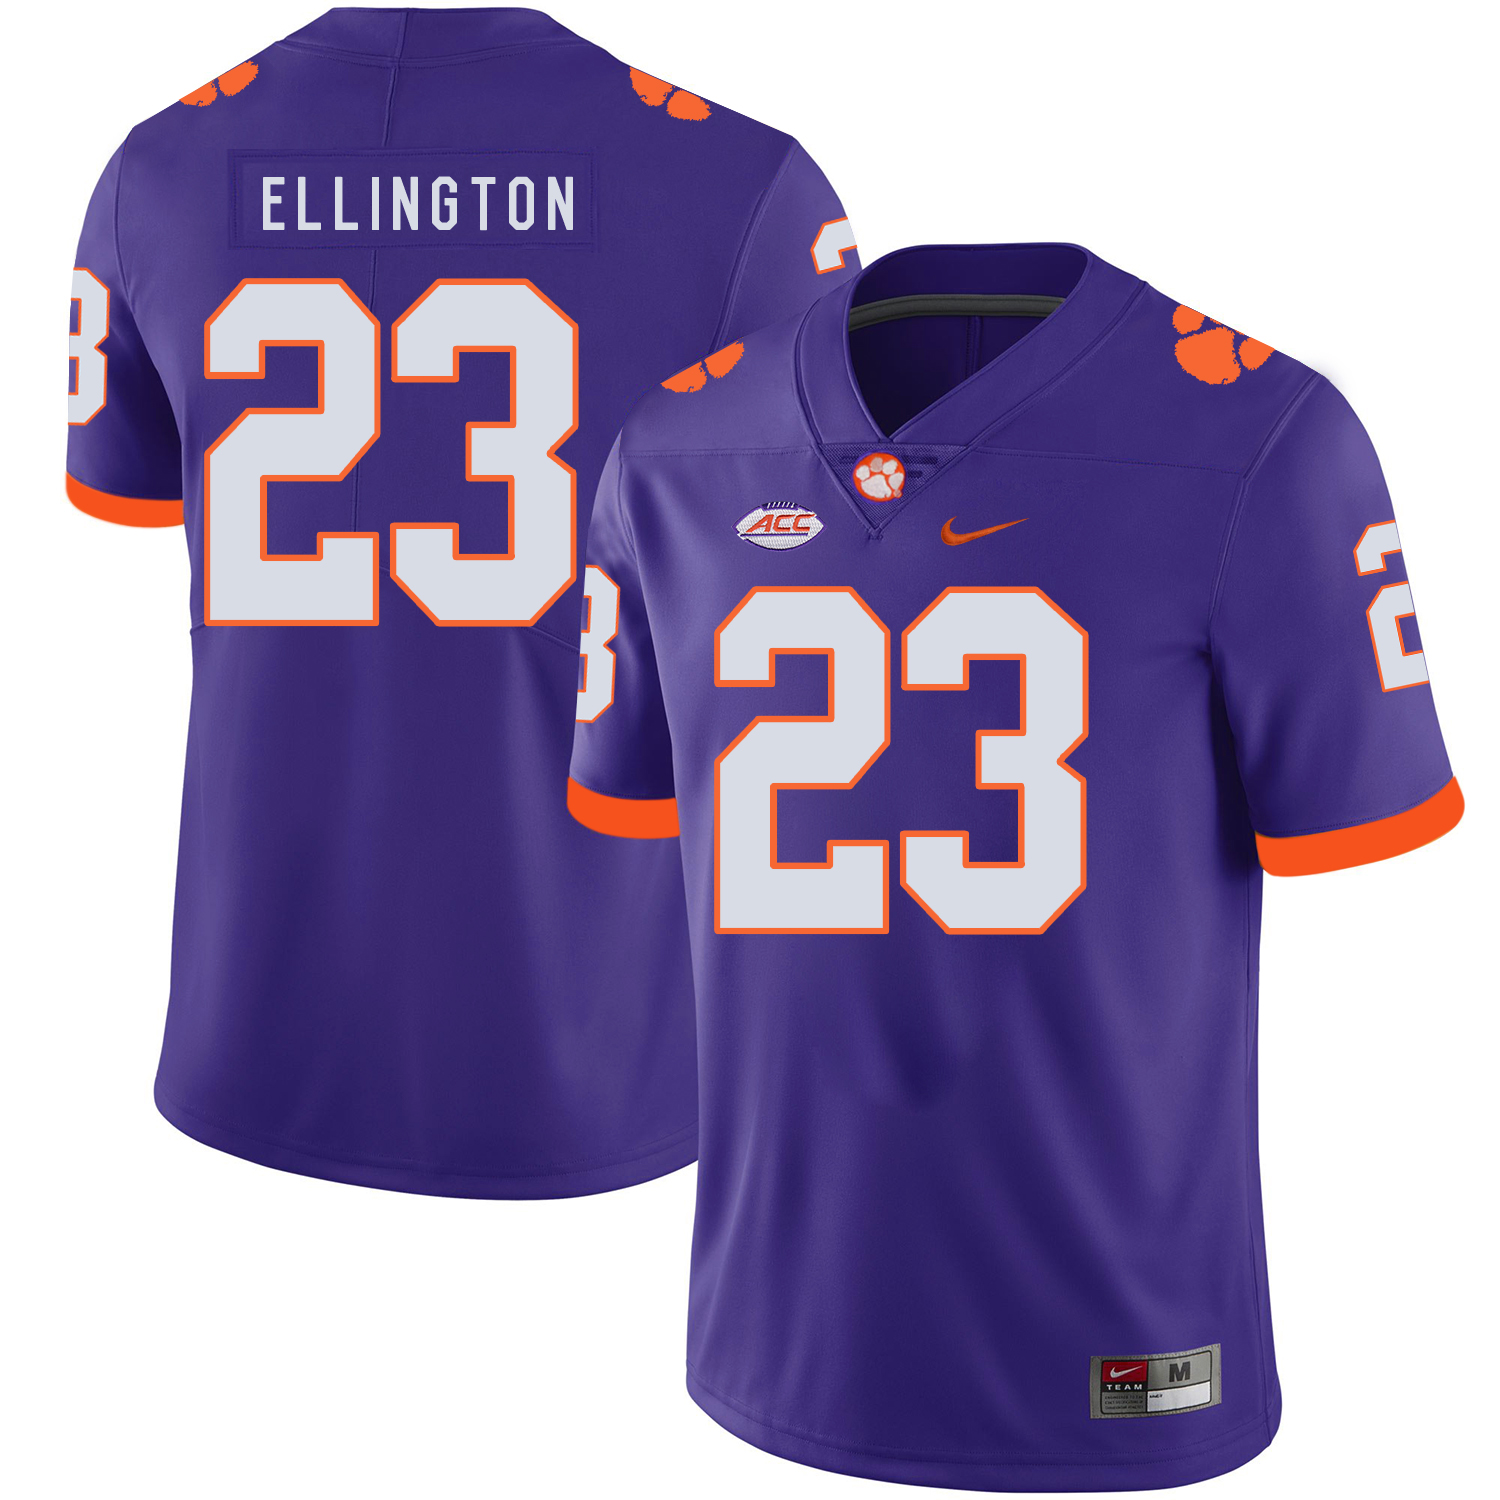 Clemson Tigers 23 Andre Ellington Purple Nike College Football Jersey